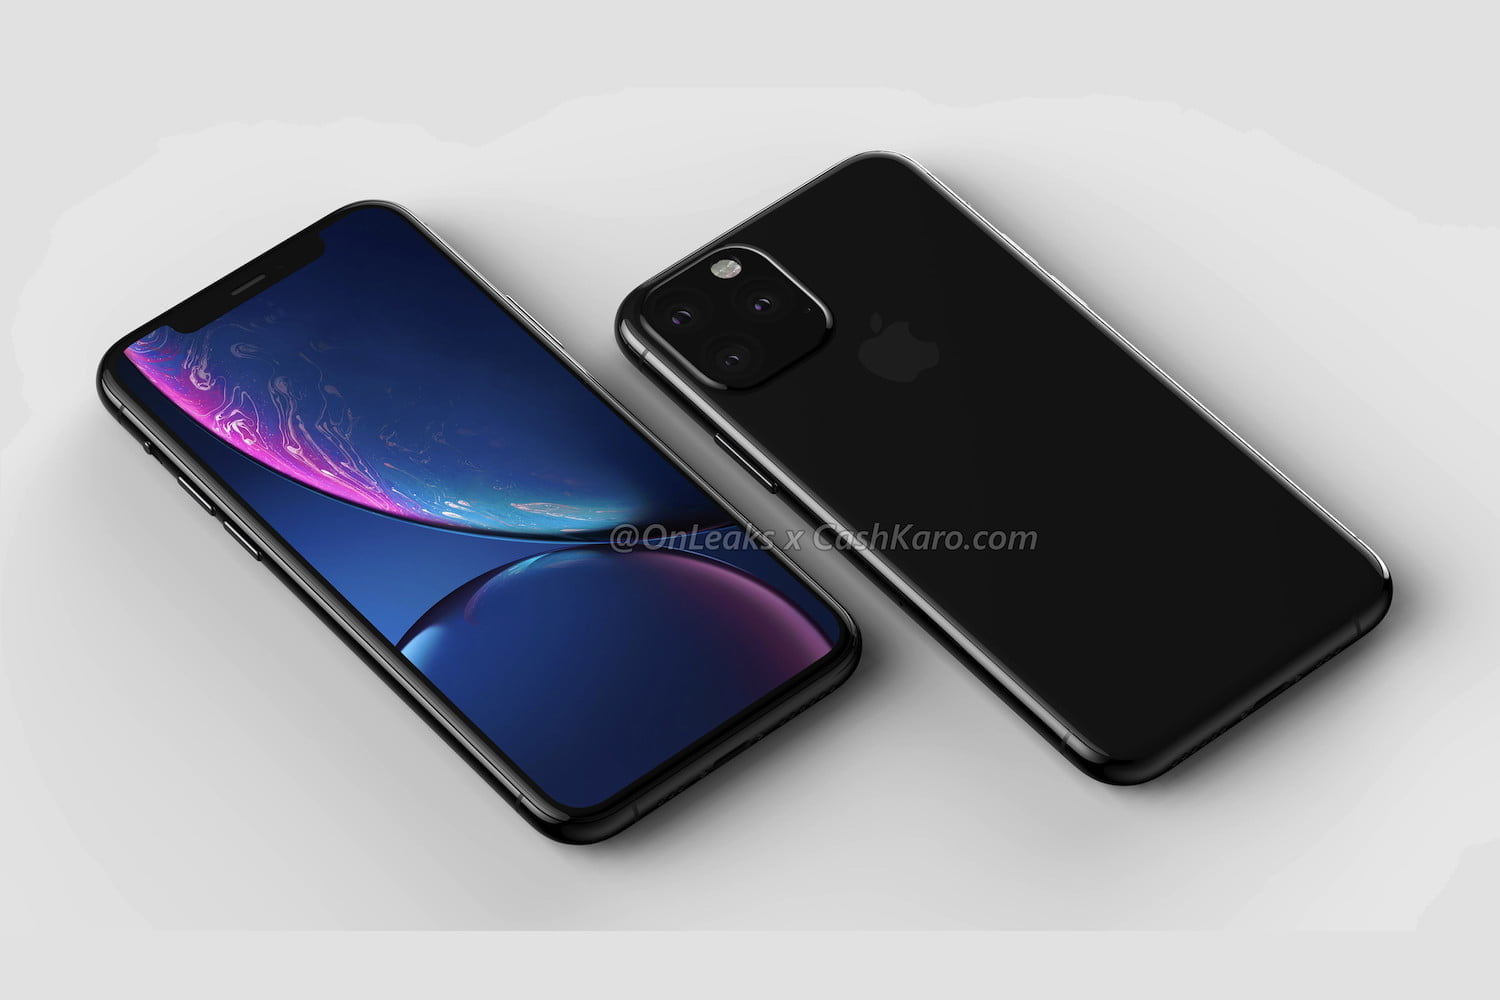 9a1f3edaf7c7ae The front of the iPhone shows the screen retains the same wide notch  introduced on the iPhone X.